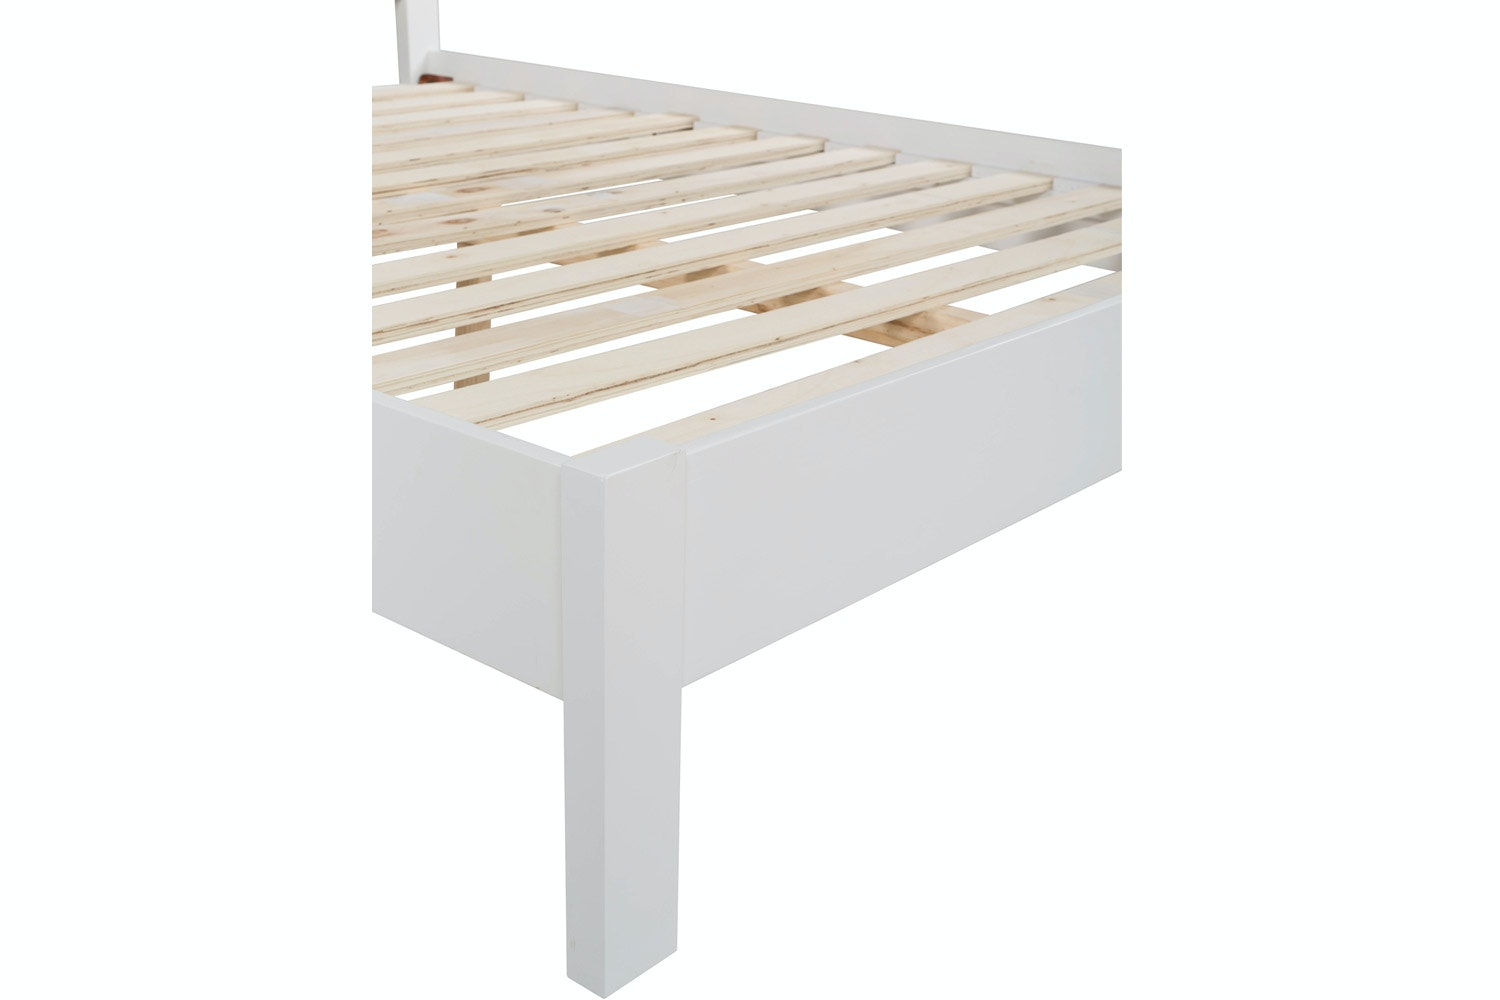 Ascott Double Bed Frame | 4ft6 | White